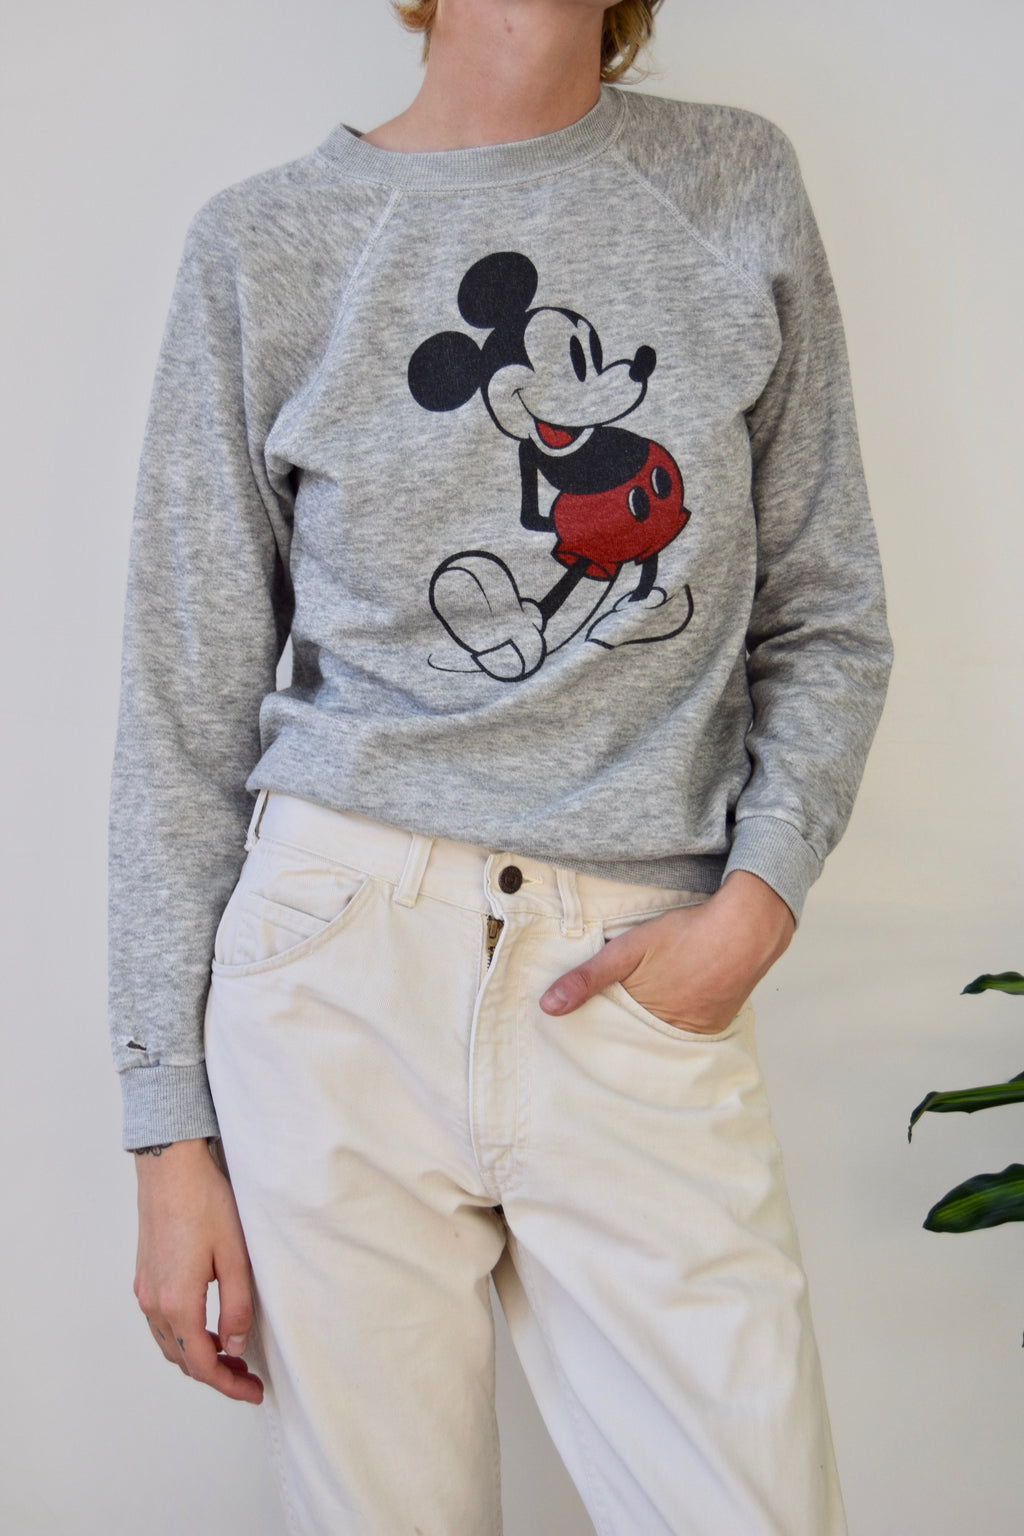 Vintage Heather Grey Mickey Mouse Sweatshirt